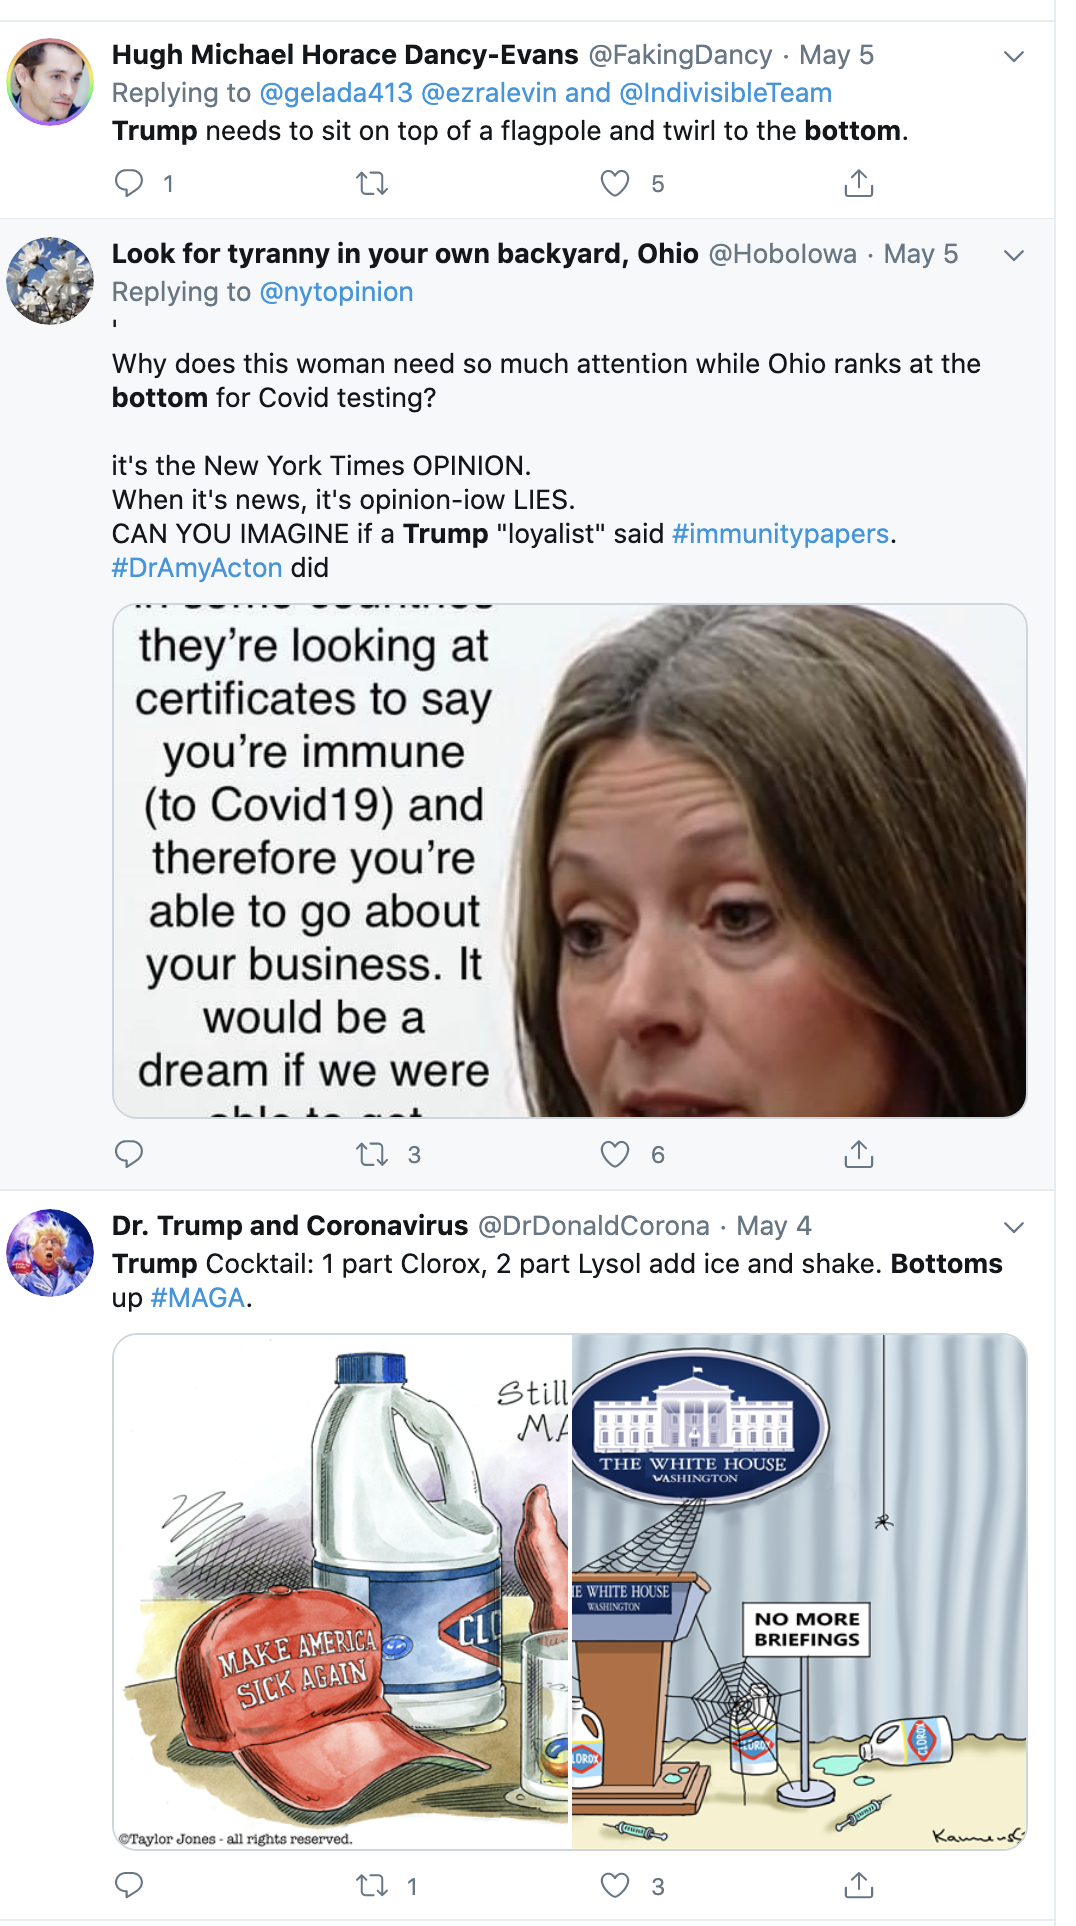 Screen-Shot-2020-05-10-at-1.36.26-PM Obama Does Mother's Day Right, Calls Trump 'Chaotic Disaster' Domestic Policy Featured Feminism Politics Top Stories